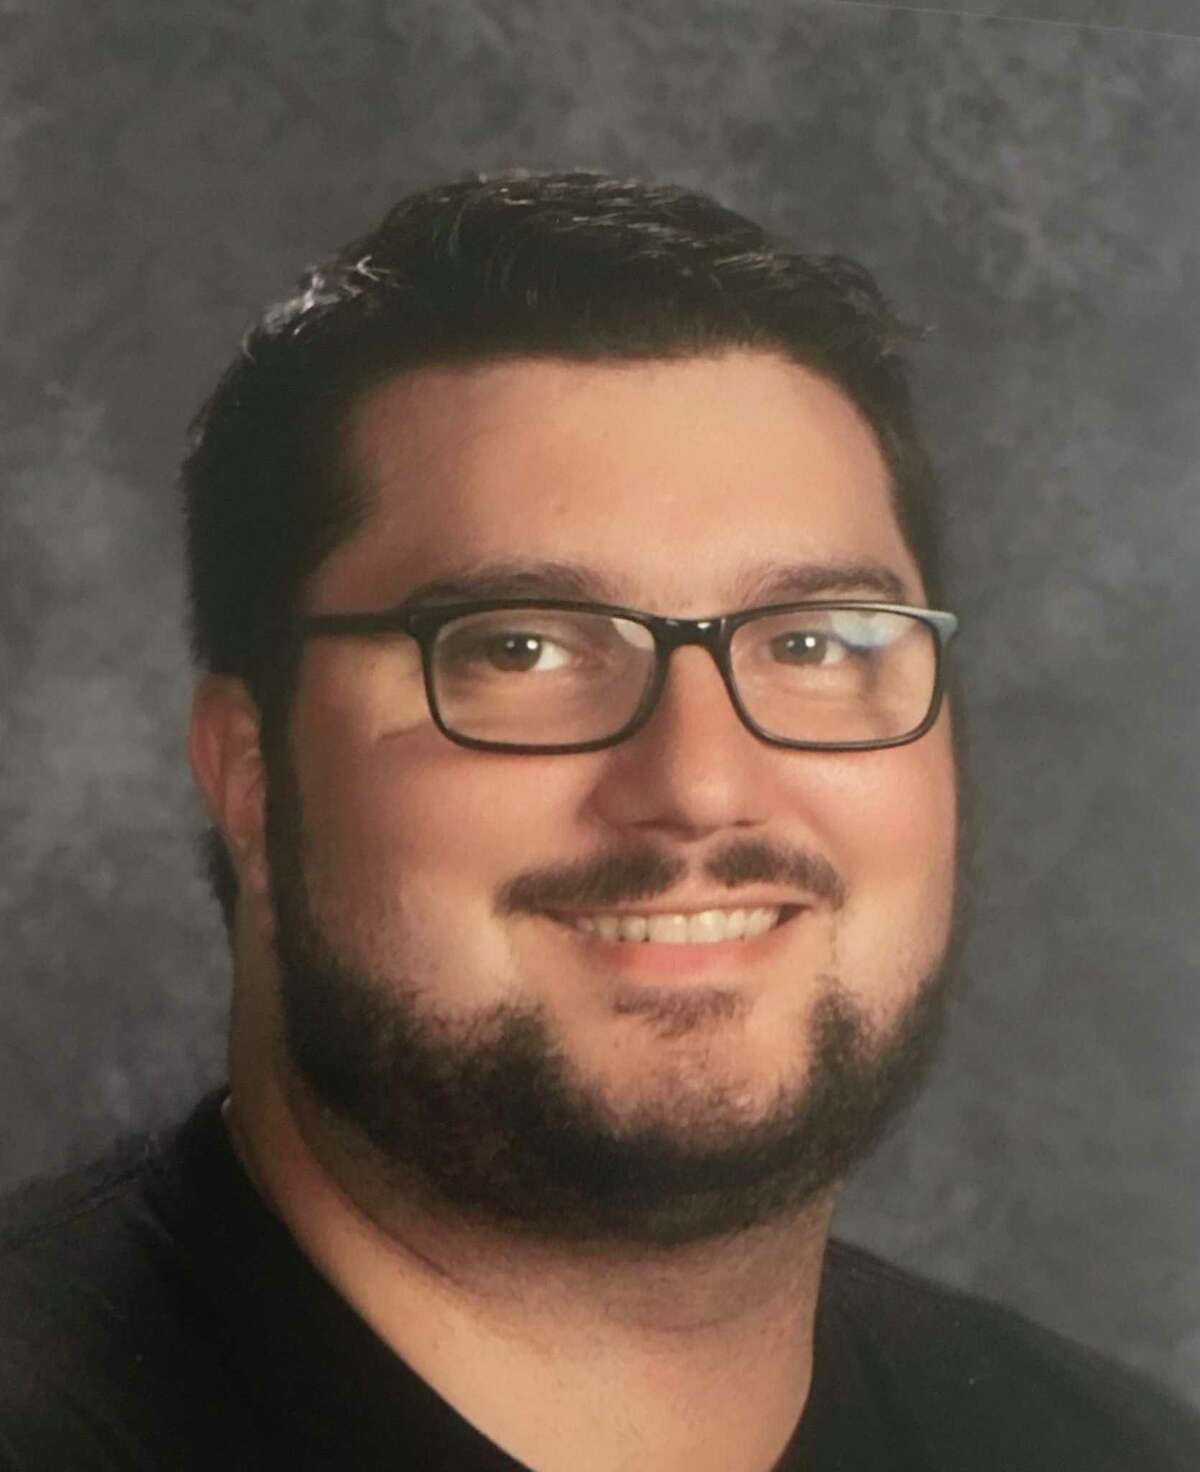 Josh Prater, an 11th-grade U.S. history teacher at Sam Rayburn High School, has seen changes in attitude from students who previously said they hated school but now want to return.